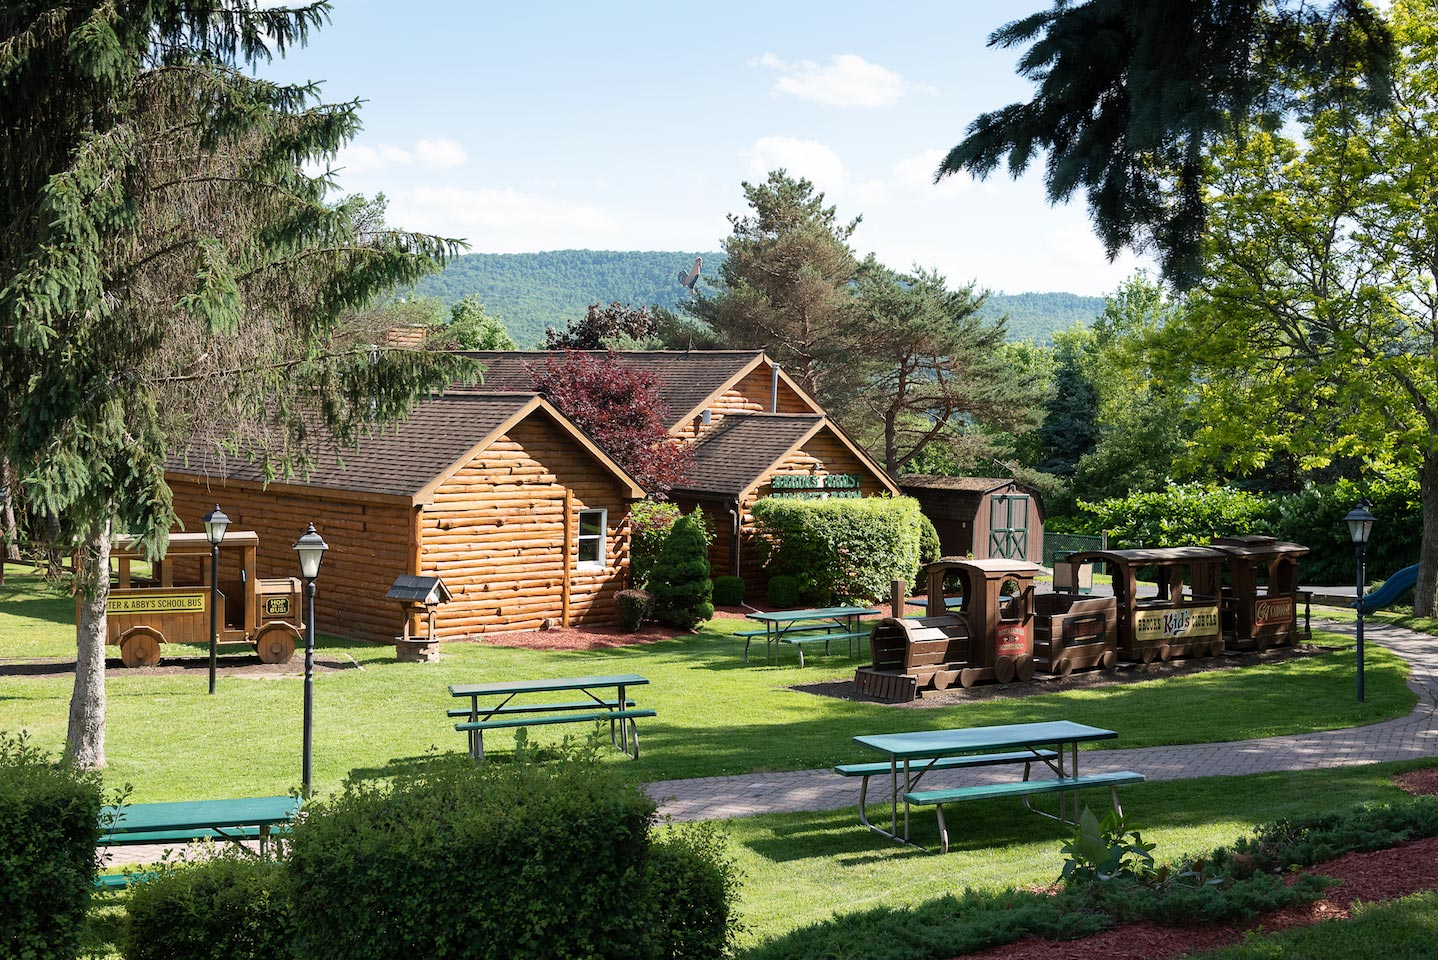 Beer and Barbecue in Cooperstown - A classic pairing, a classic town